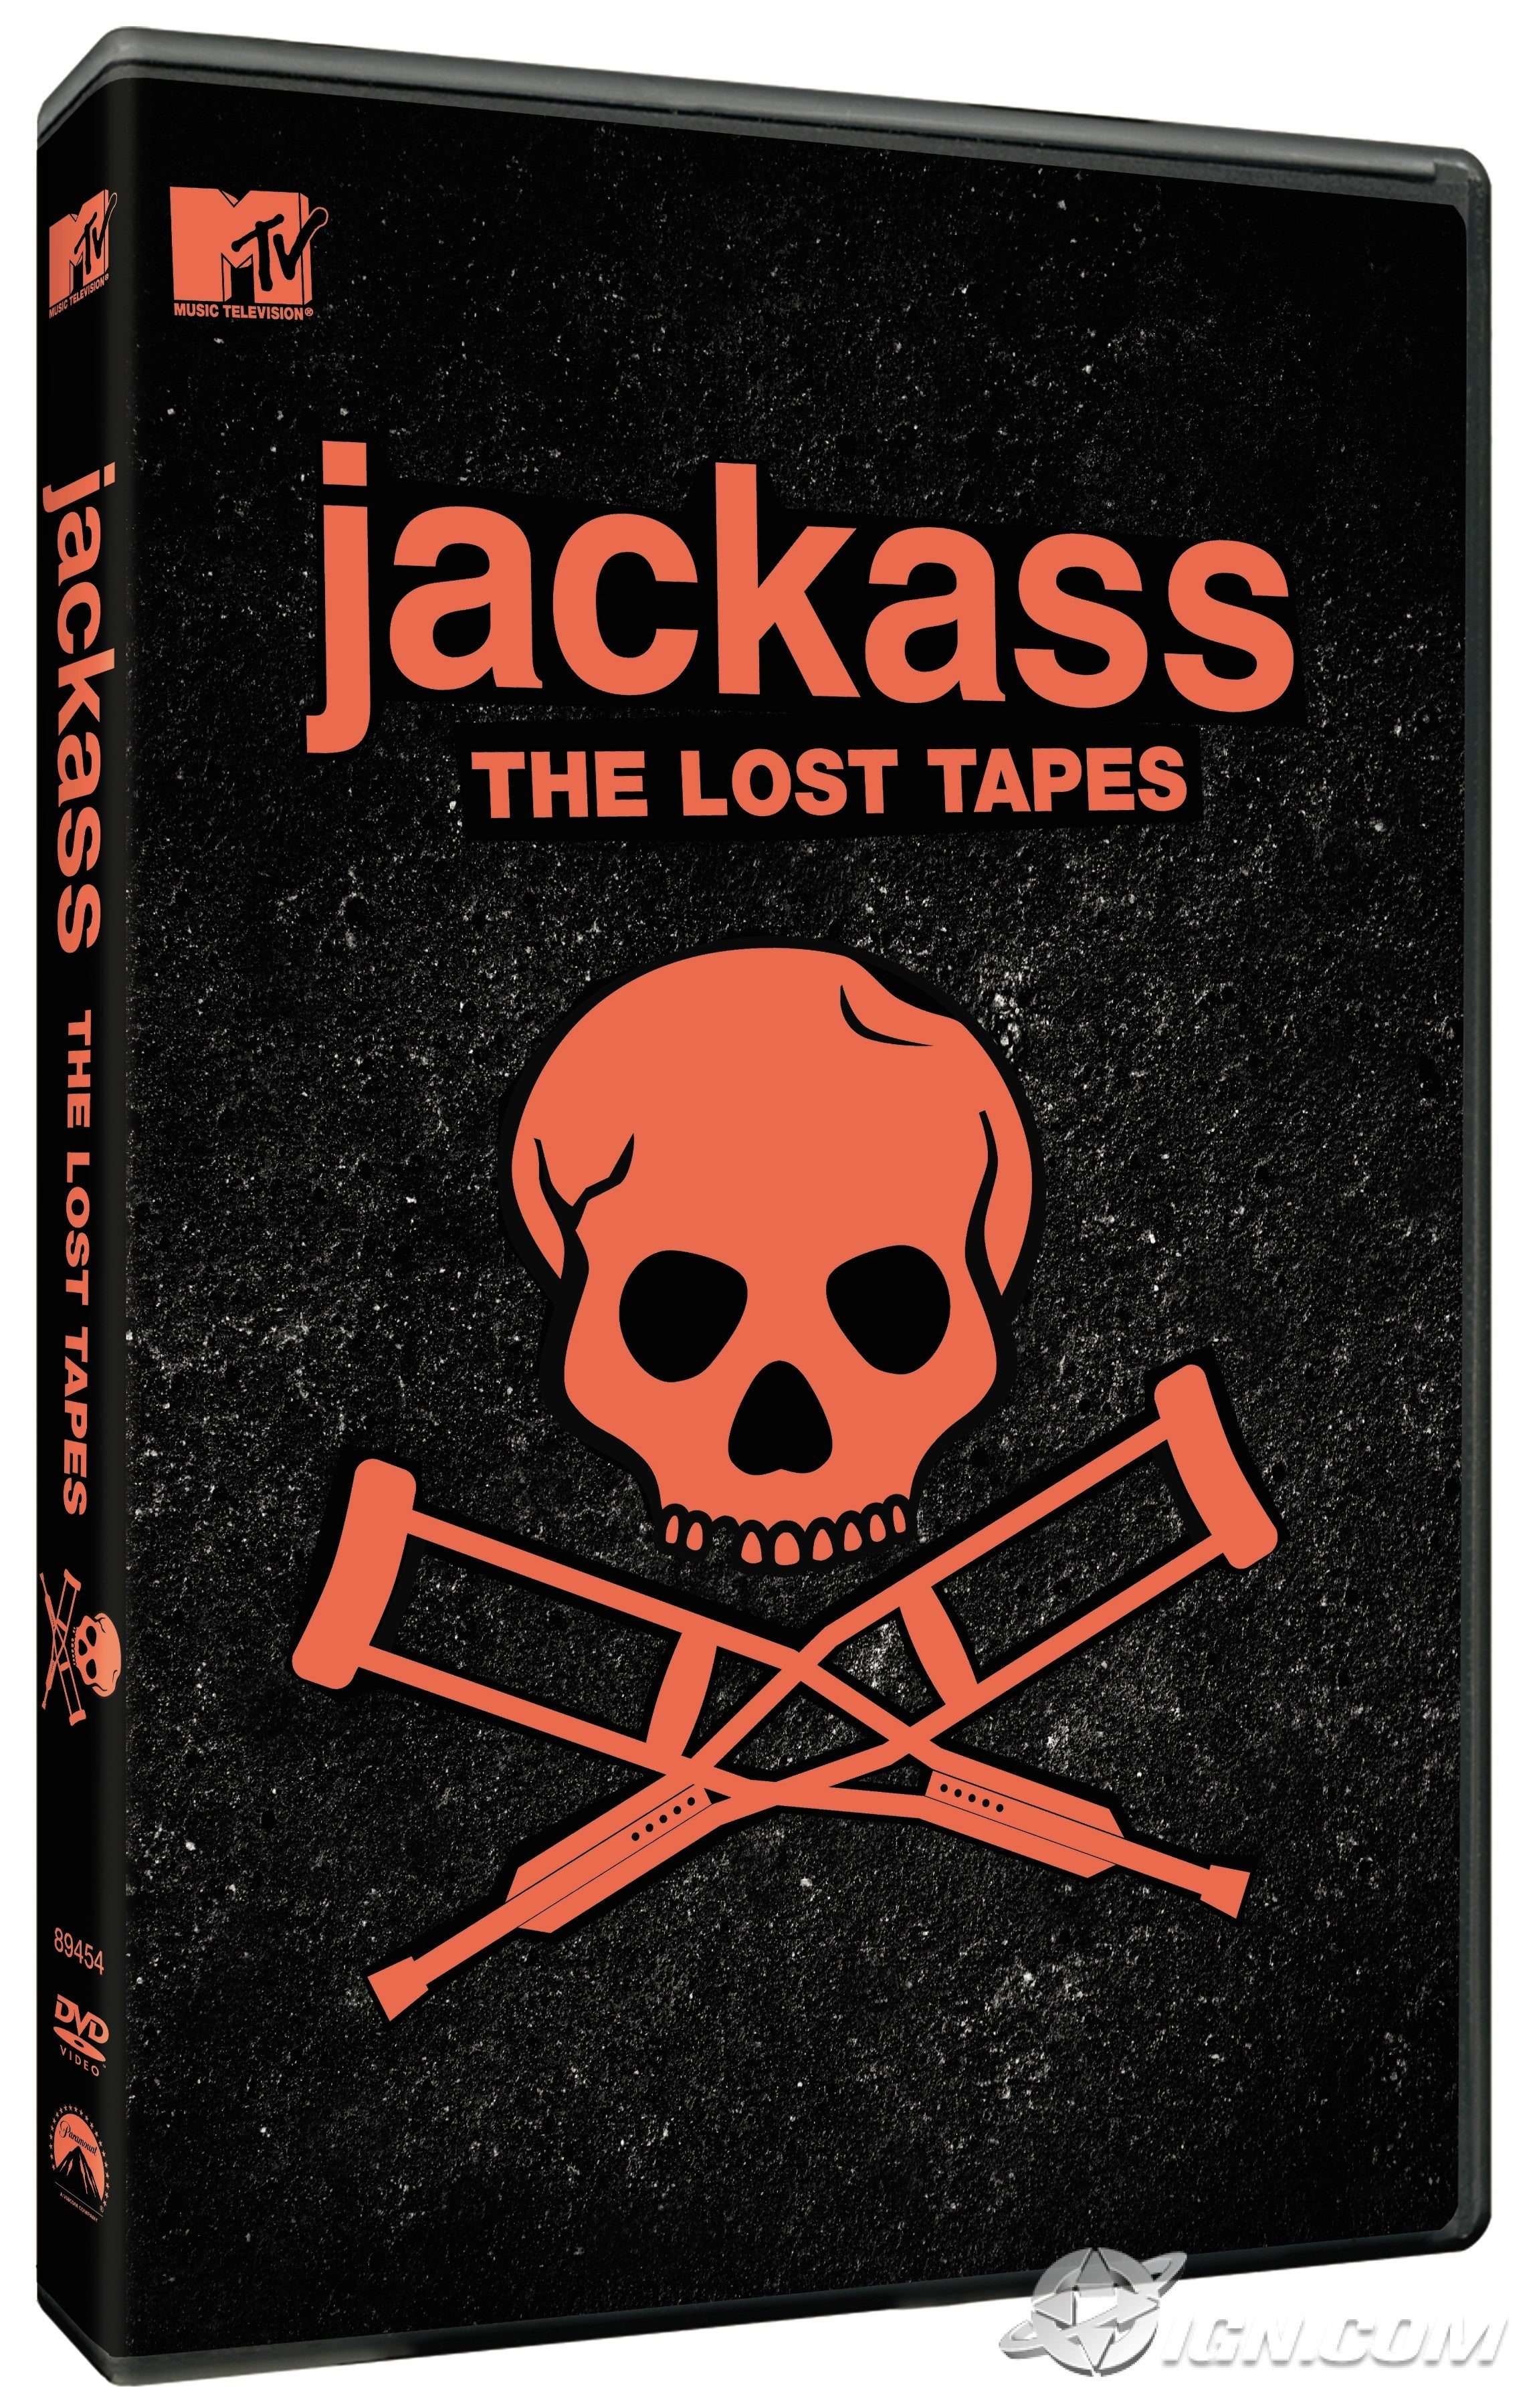 Jackass Jackass-the-lost-tapes-20090722010657778